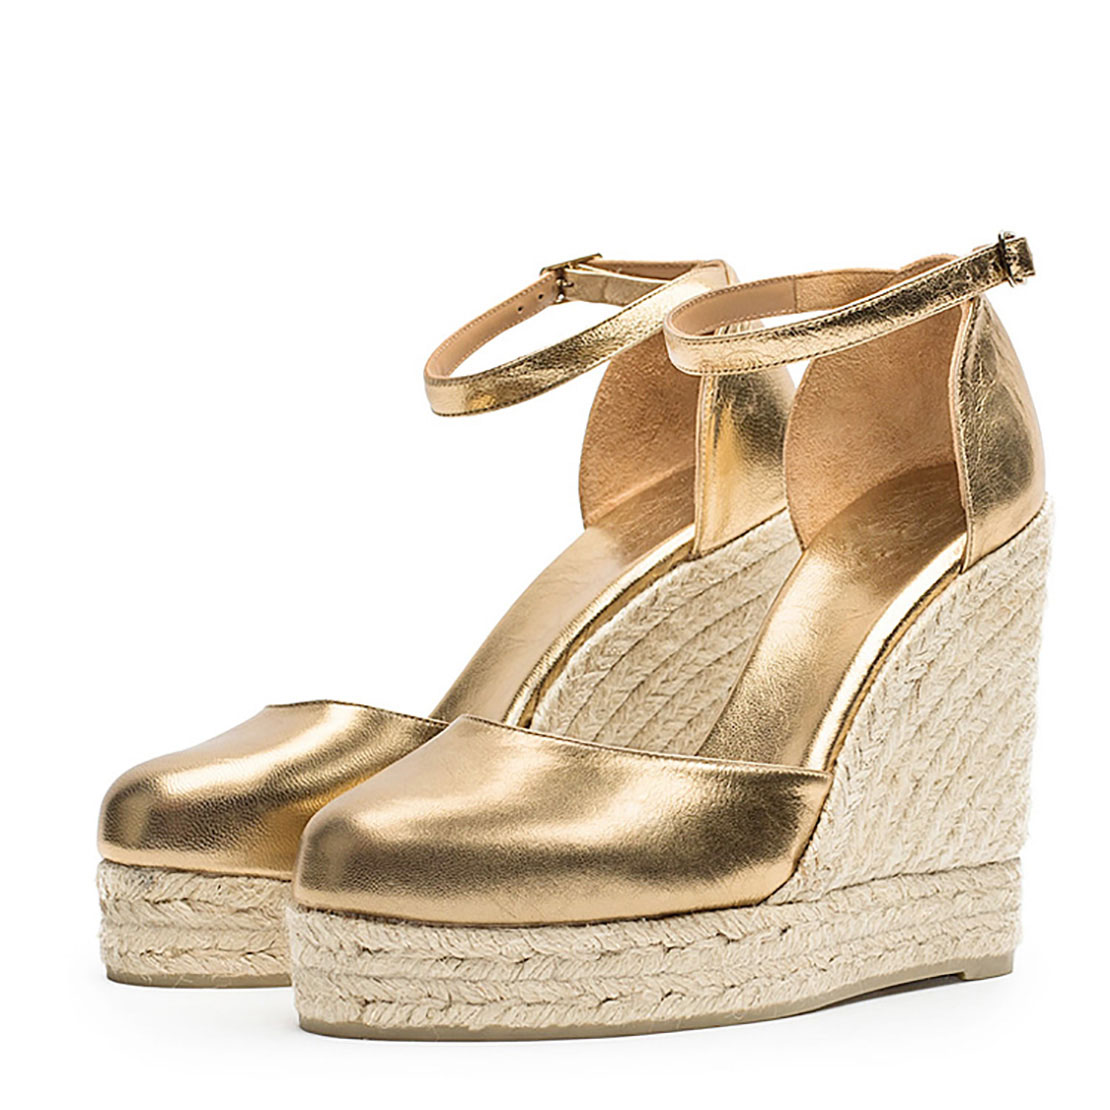 Wedge high heels gold leather women sandals YBS3026